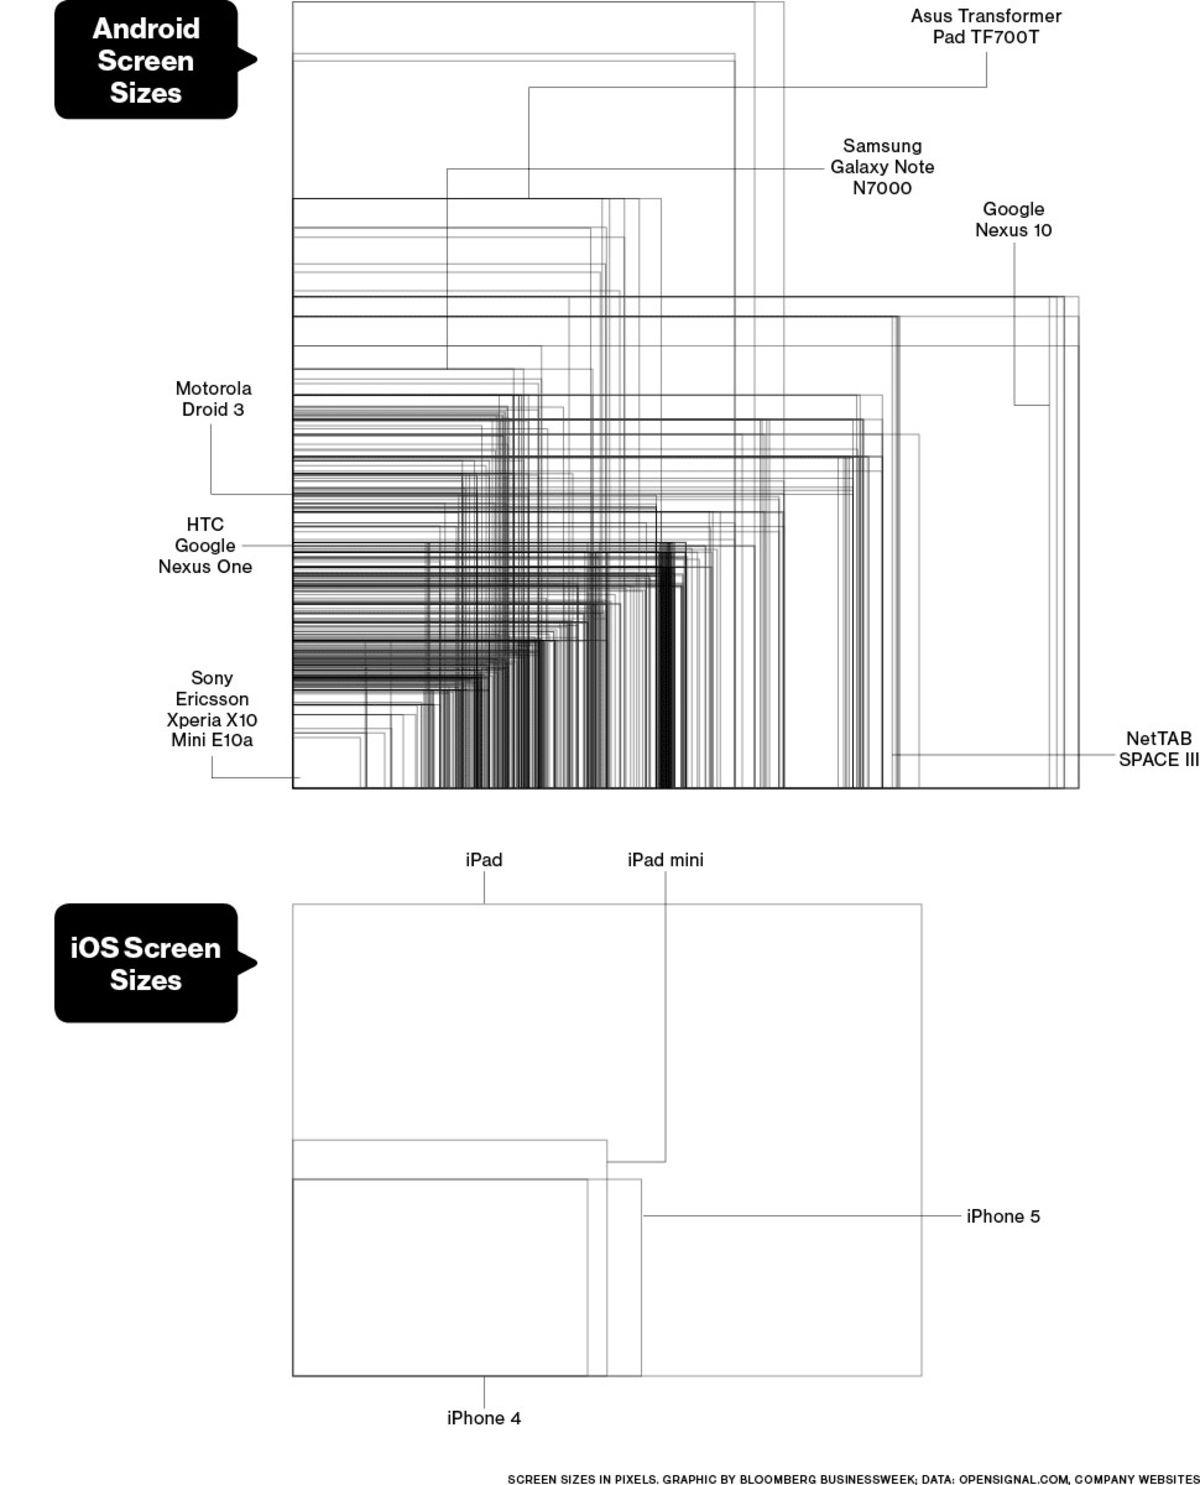 Graphic: Comparing iOS and Android Screen Sizes - Bloomberg